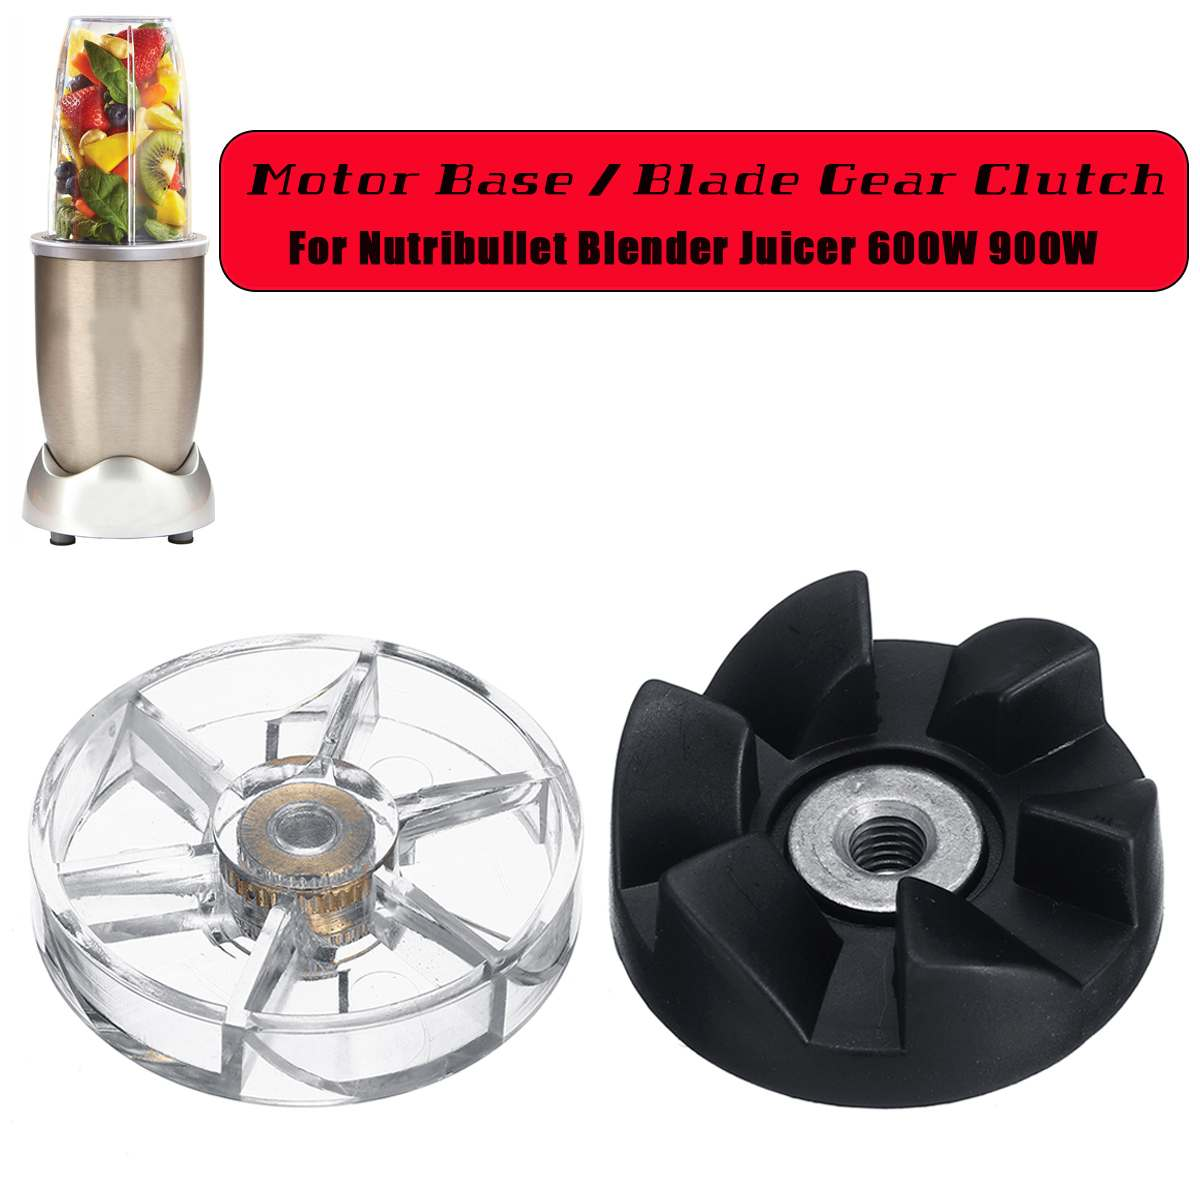 1pc Black/Transparent Motor Base/Blade Gear Clutch Juicer Replacement Part For Juicer 600W/900W